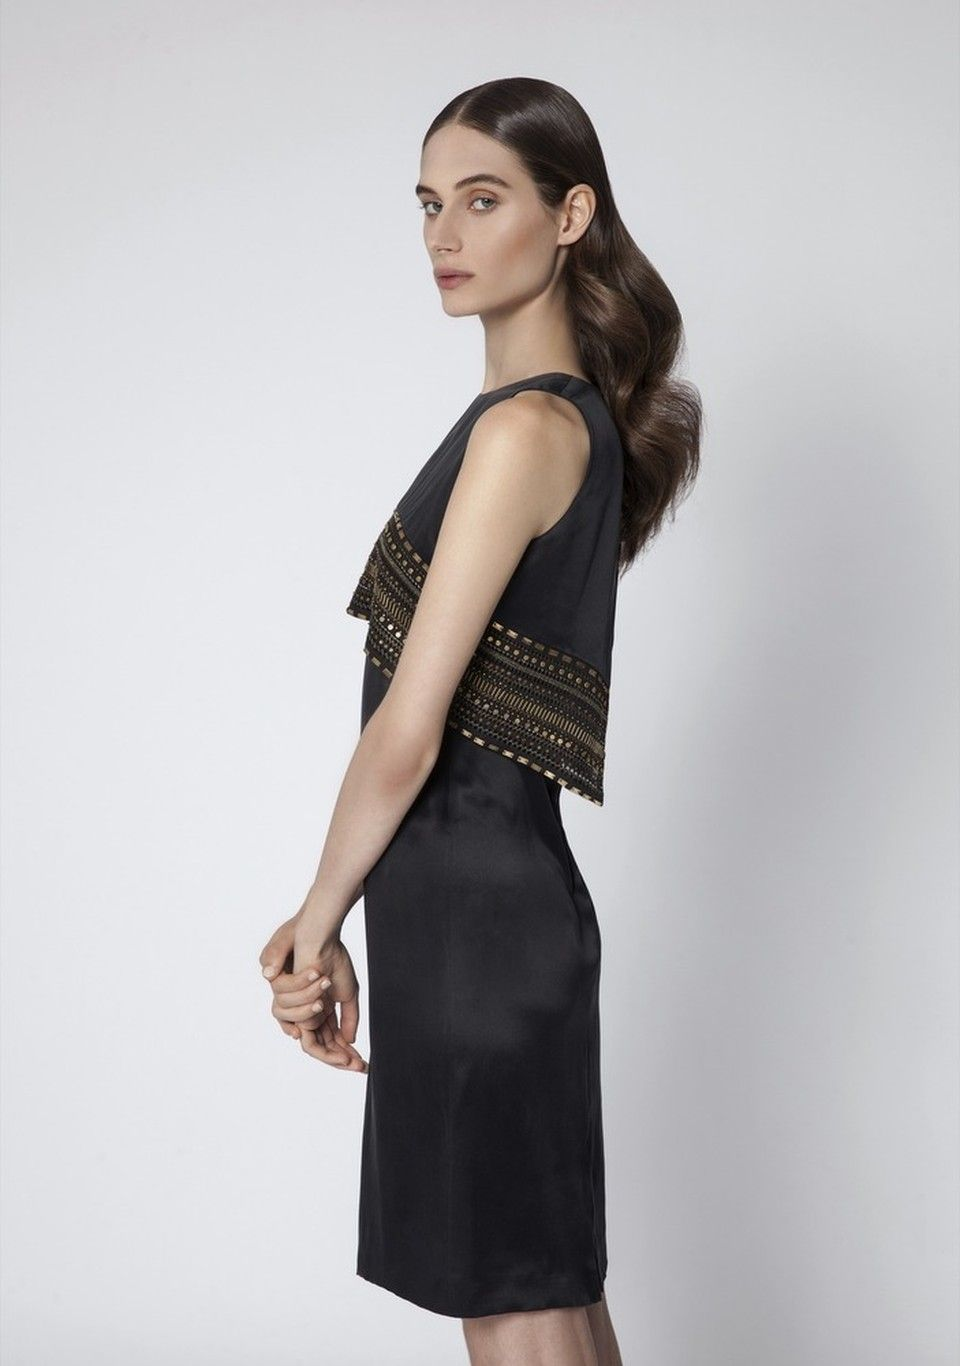 Dress by #Maskit from the spring/summer 15 collection exclusively on Betosee : http://www.betosee.com/collection/1344 #trends2015 #fashion #dress #womenswear